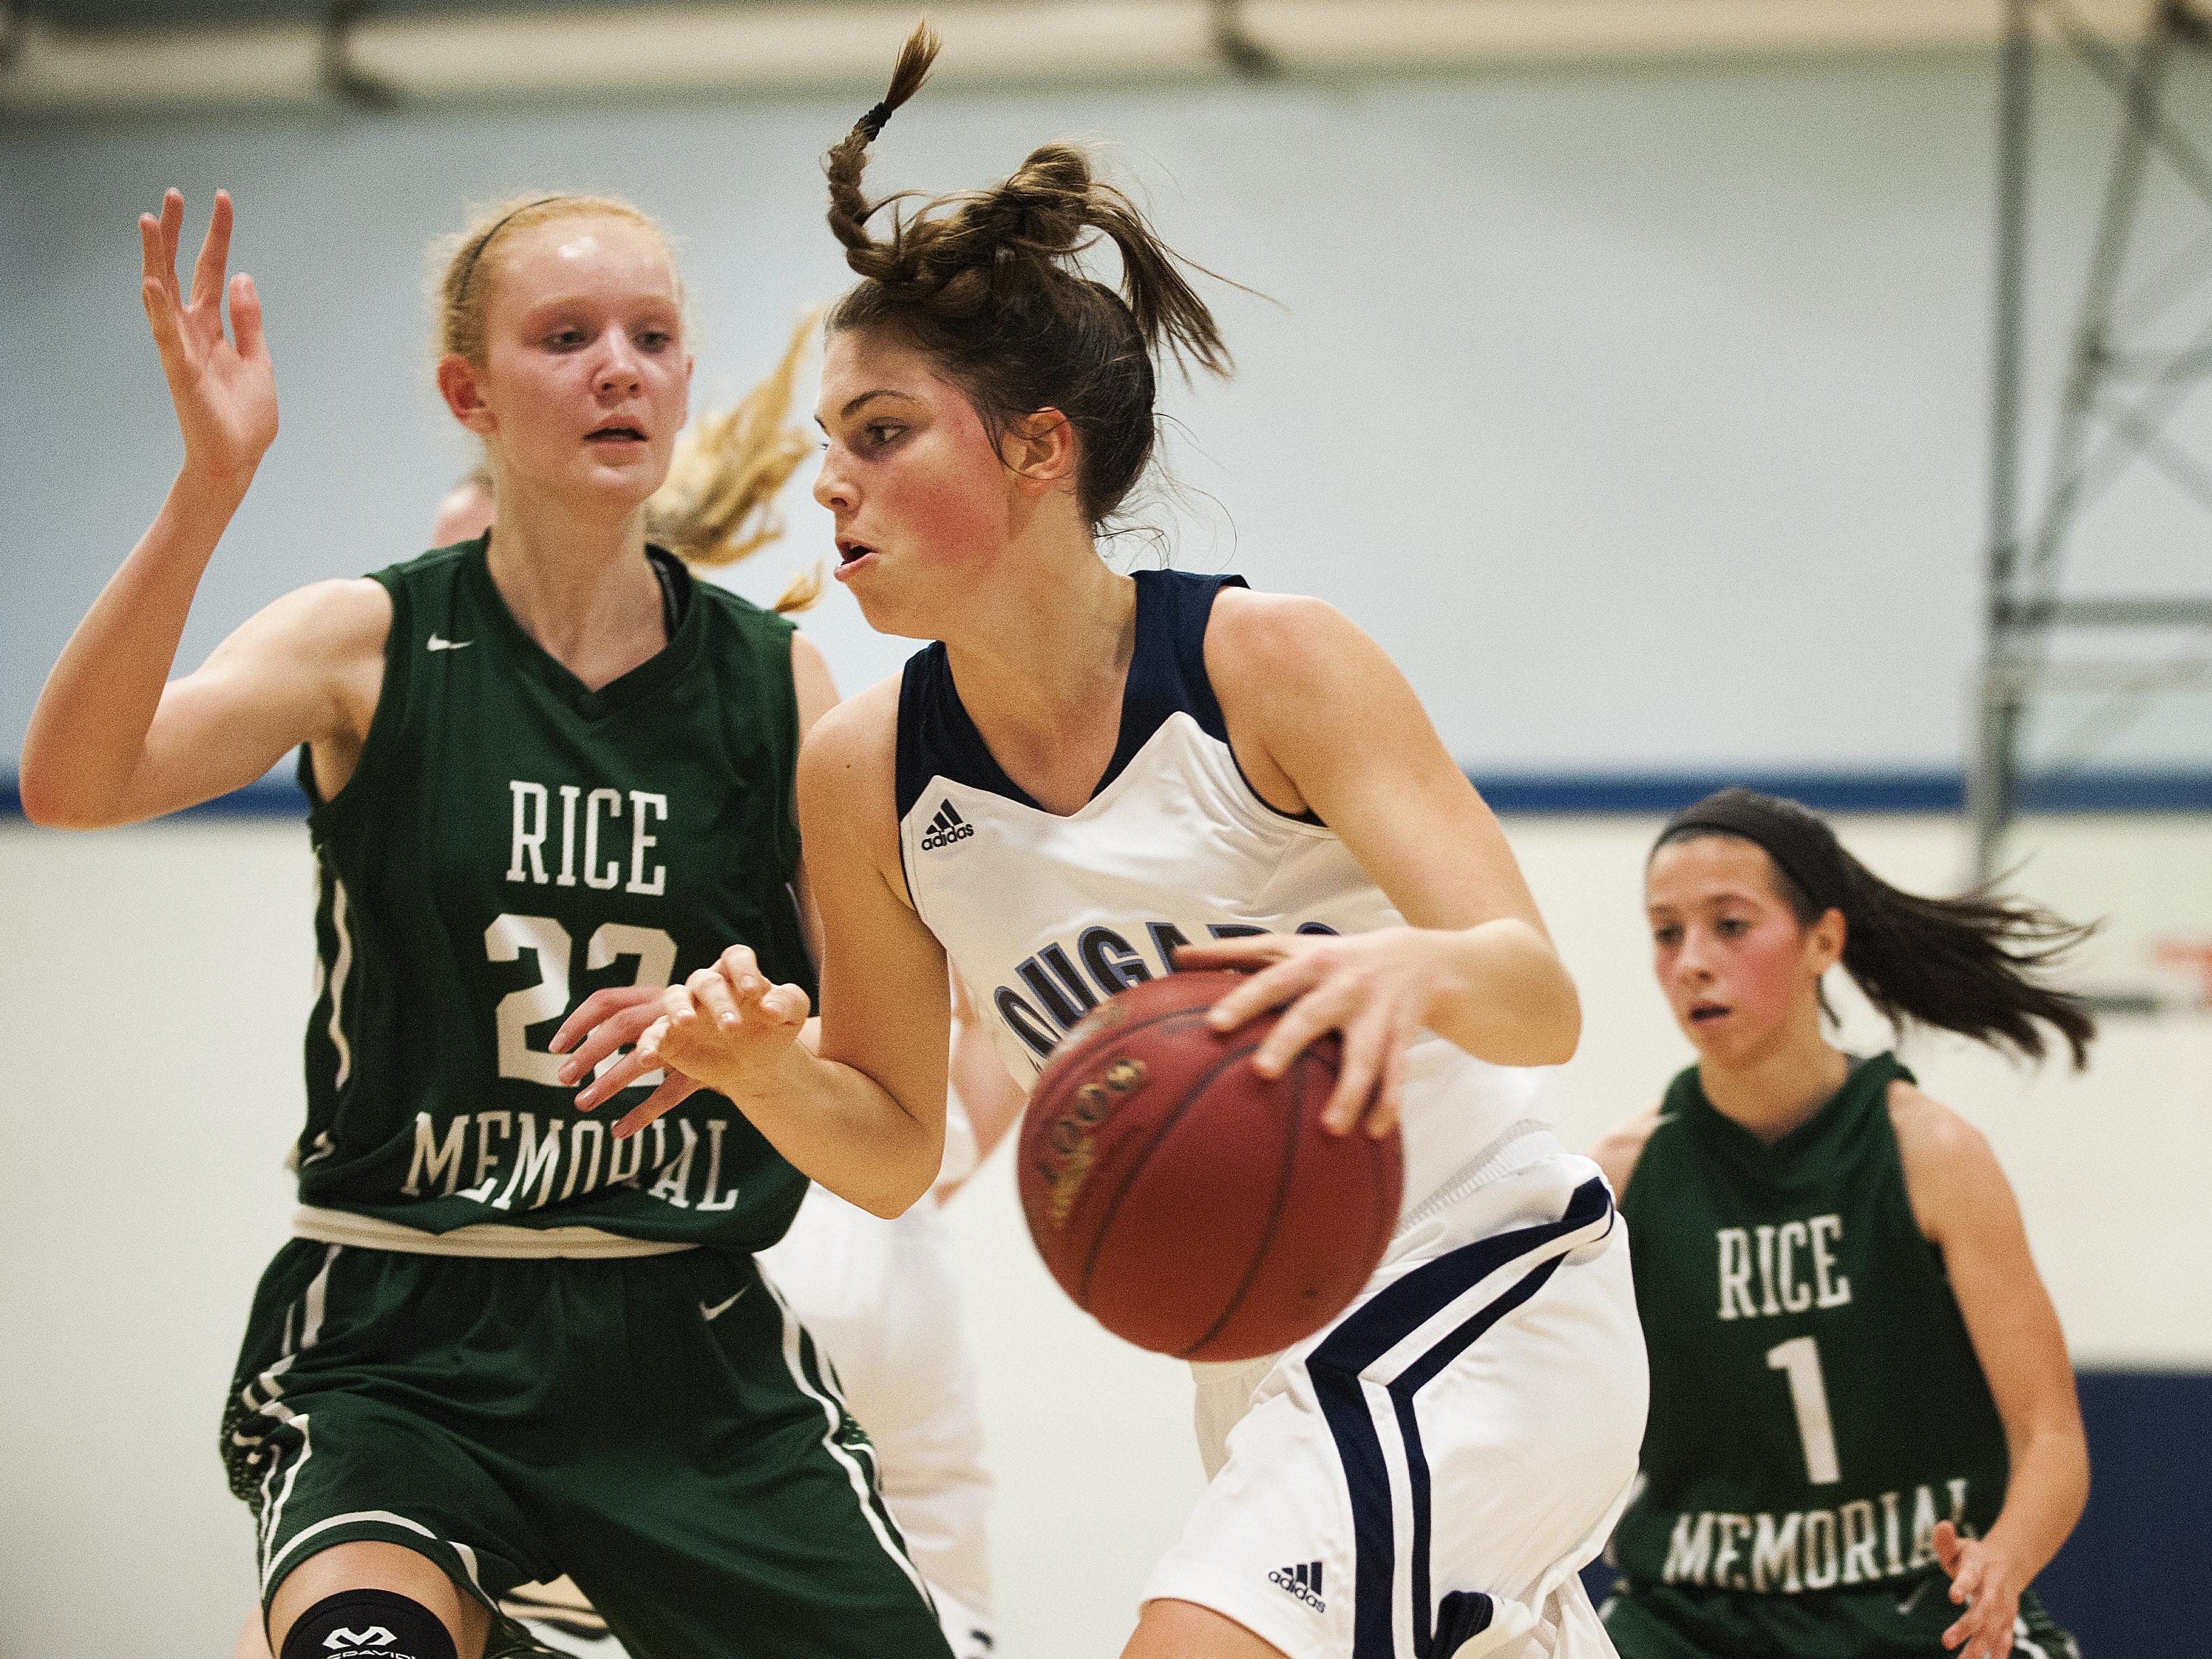 Mount Mansfield forward Perry Willett (5) drives to the hoop past Rice forward Lizzy Lyman (22) during the girls basketball game between the Rice Green knights and the Mount Mansfield Cougars at MMU High School on Friday night December 4, 2015 in Jericho.